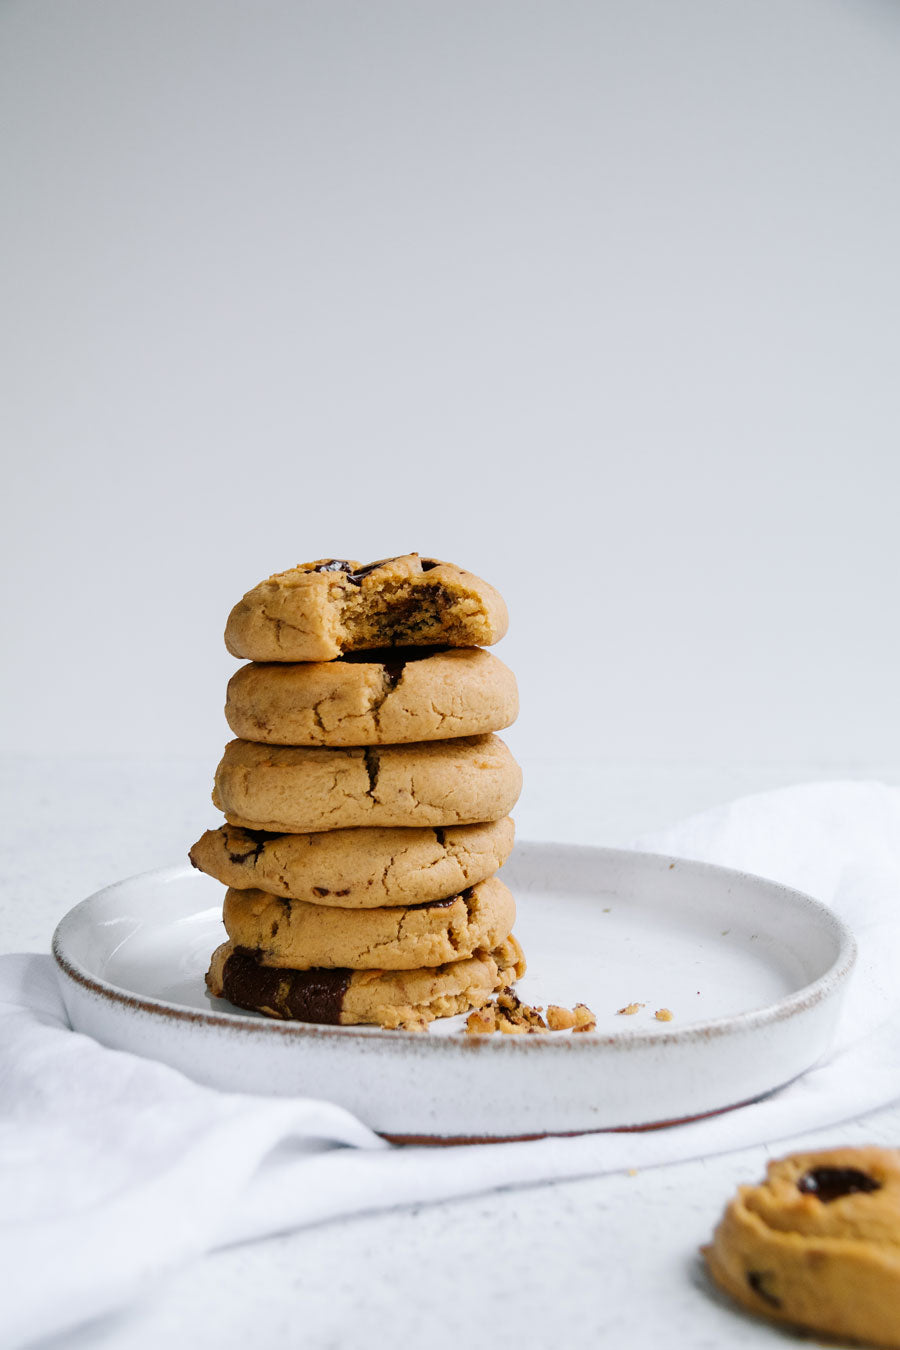 Smor-Kitchen-The-Best-Miso-Nut-Butter-Chocolate-Chip-Cookies-Recipe-Jaharn-Quinn